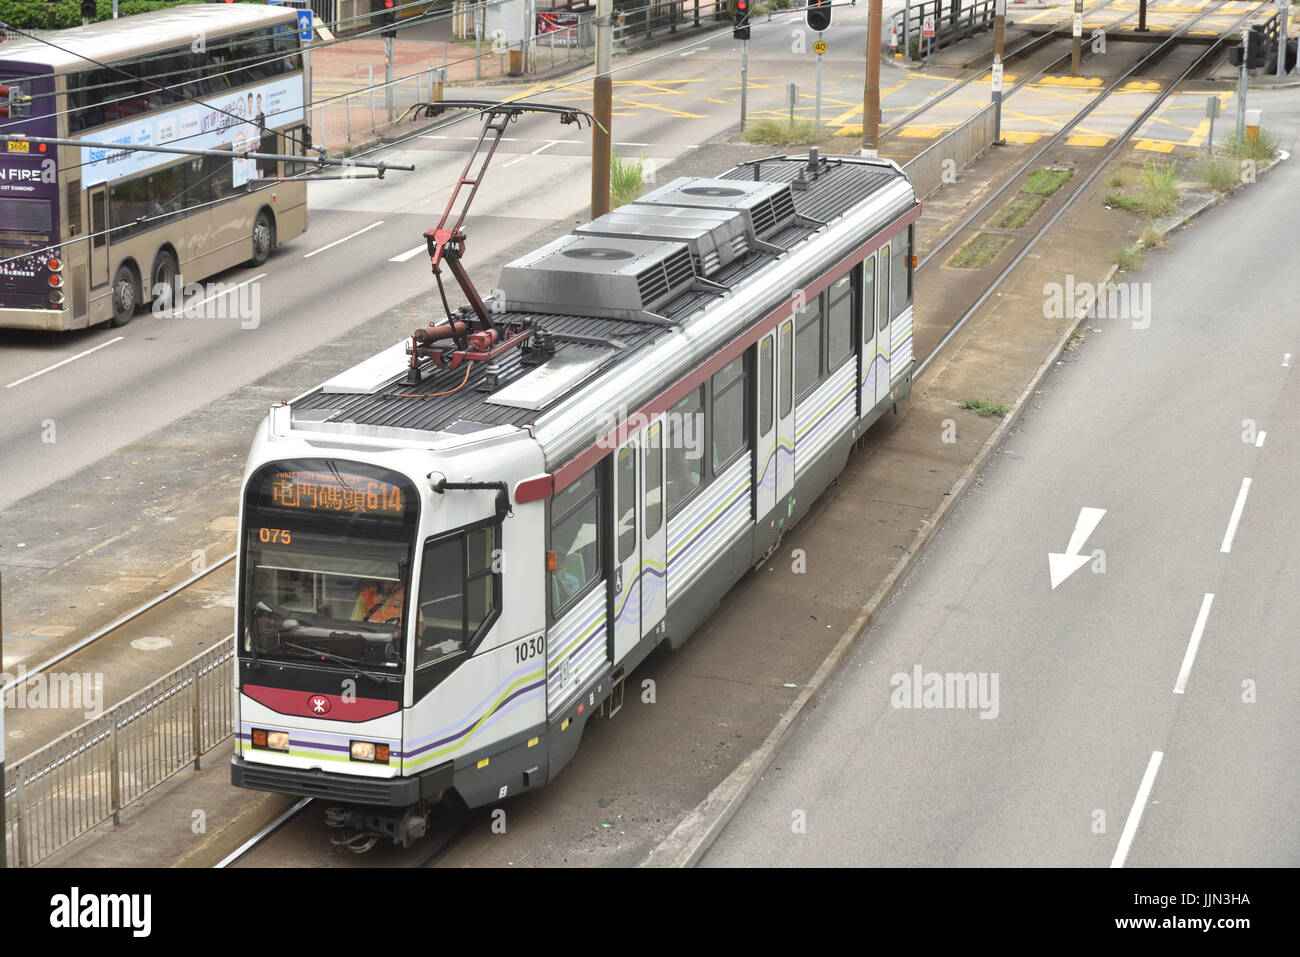 Tram of the Light Rail Transit System which offers swift services between areas of Yuen Long and Tuen Mun districts. - Stock Image